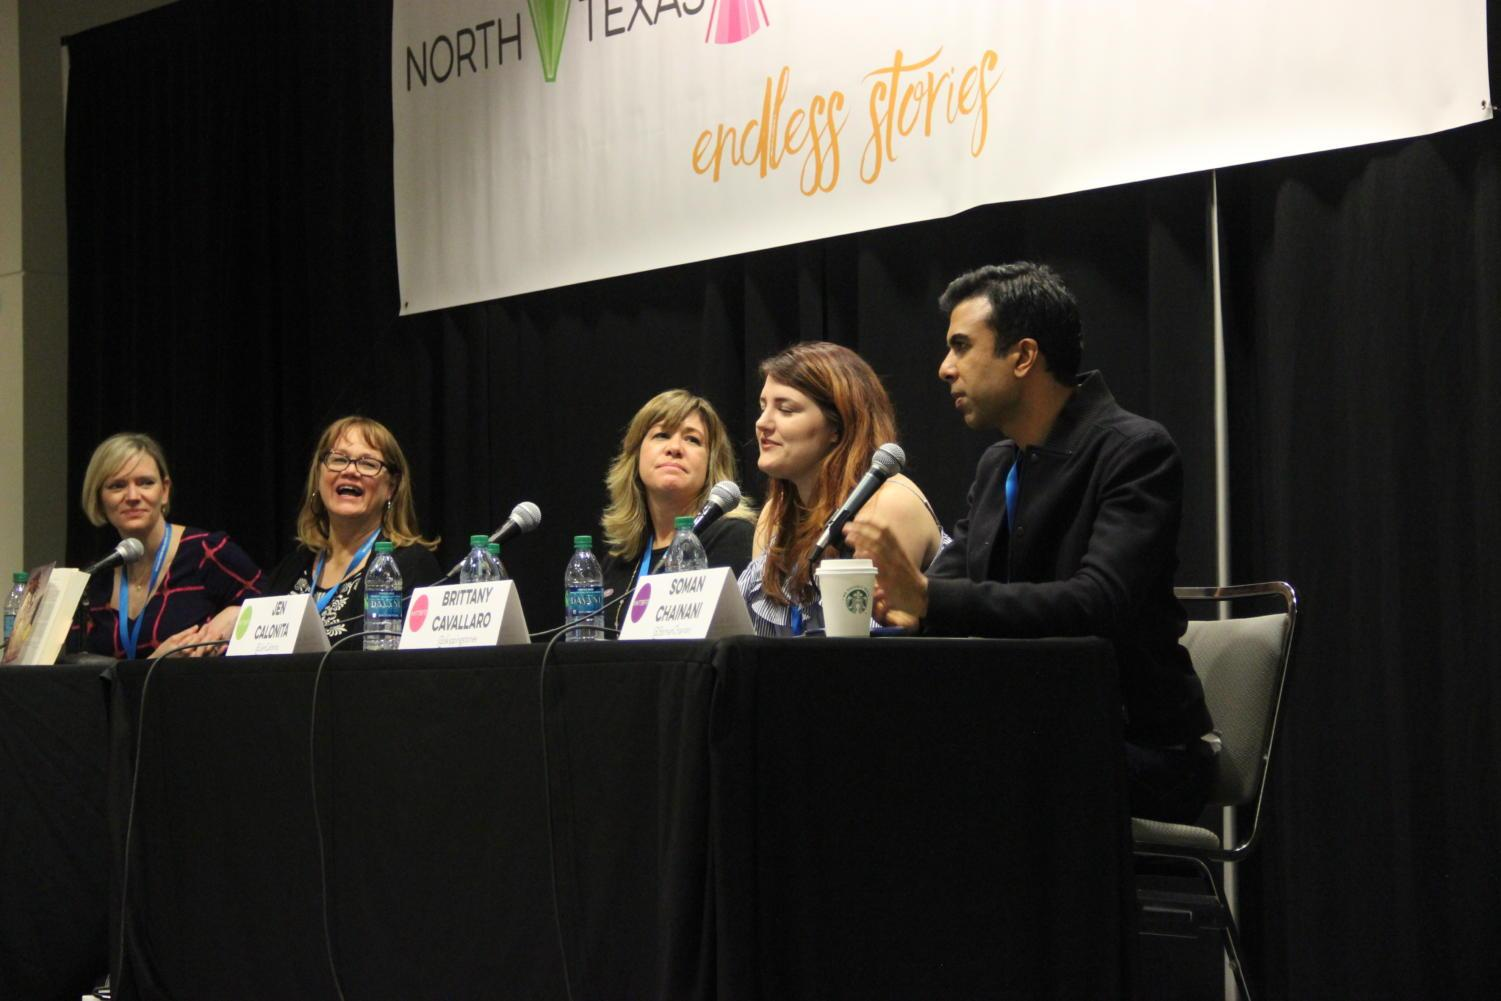 At the 2017 North Texas Teen Book Festival at the Irving Convention Center, New York Times bestselling author Brittany Cavallaro shares her experiences during the School Days, School Daze panel. This year's festival is tomorrow from 8 a.m. - 4 p.m. at the Irving Convention Center.